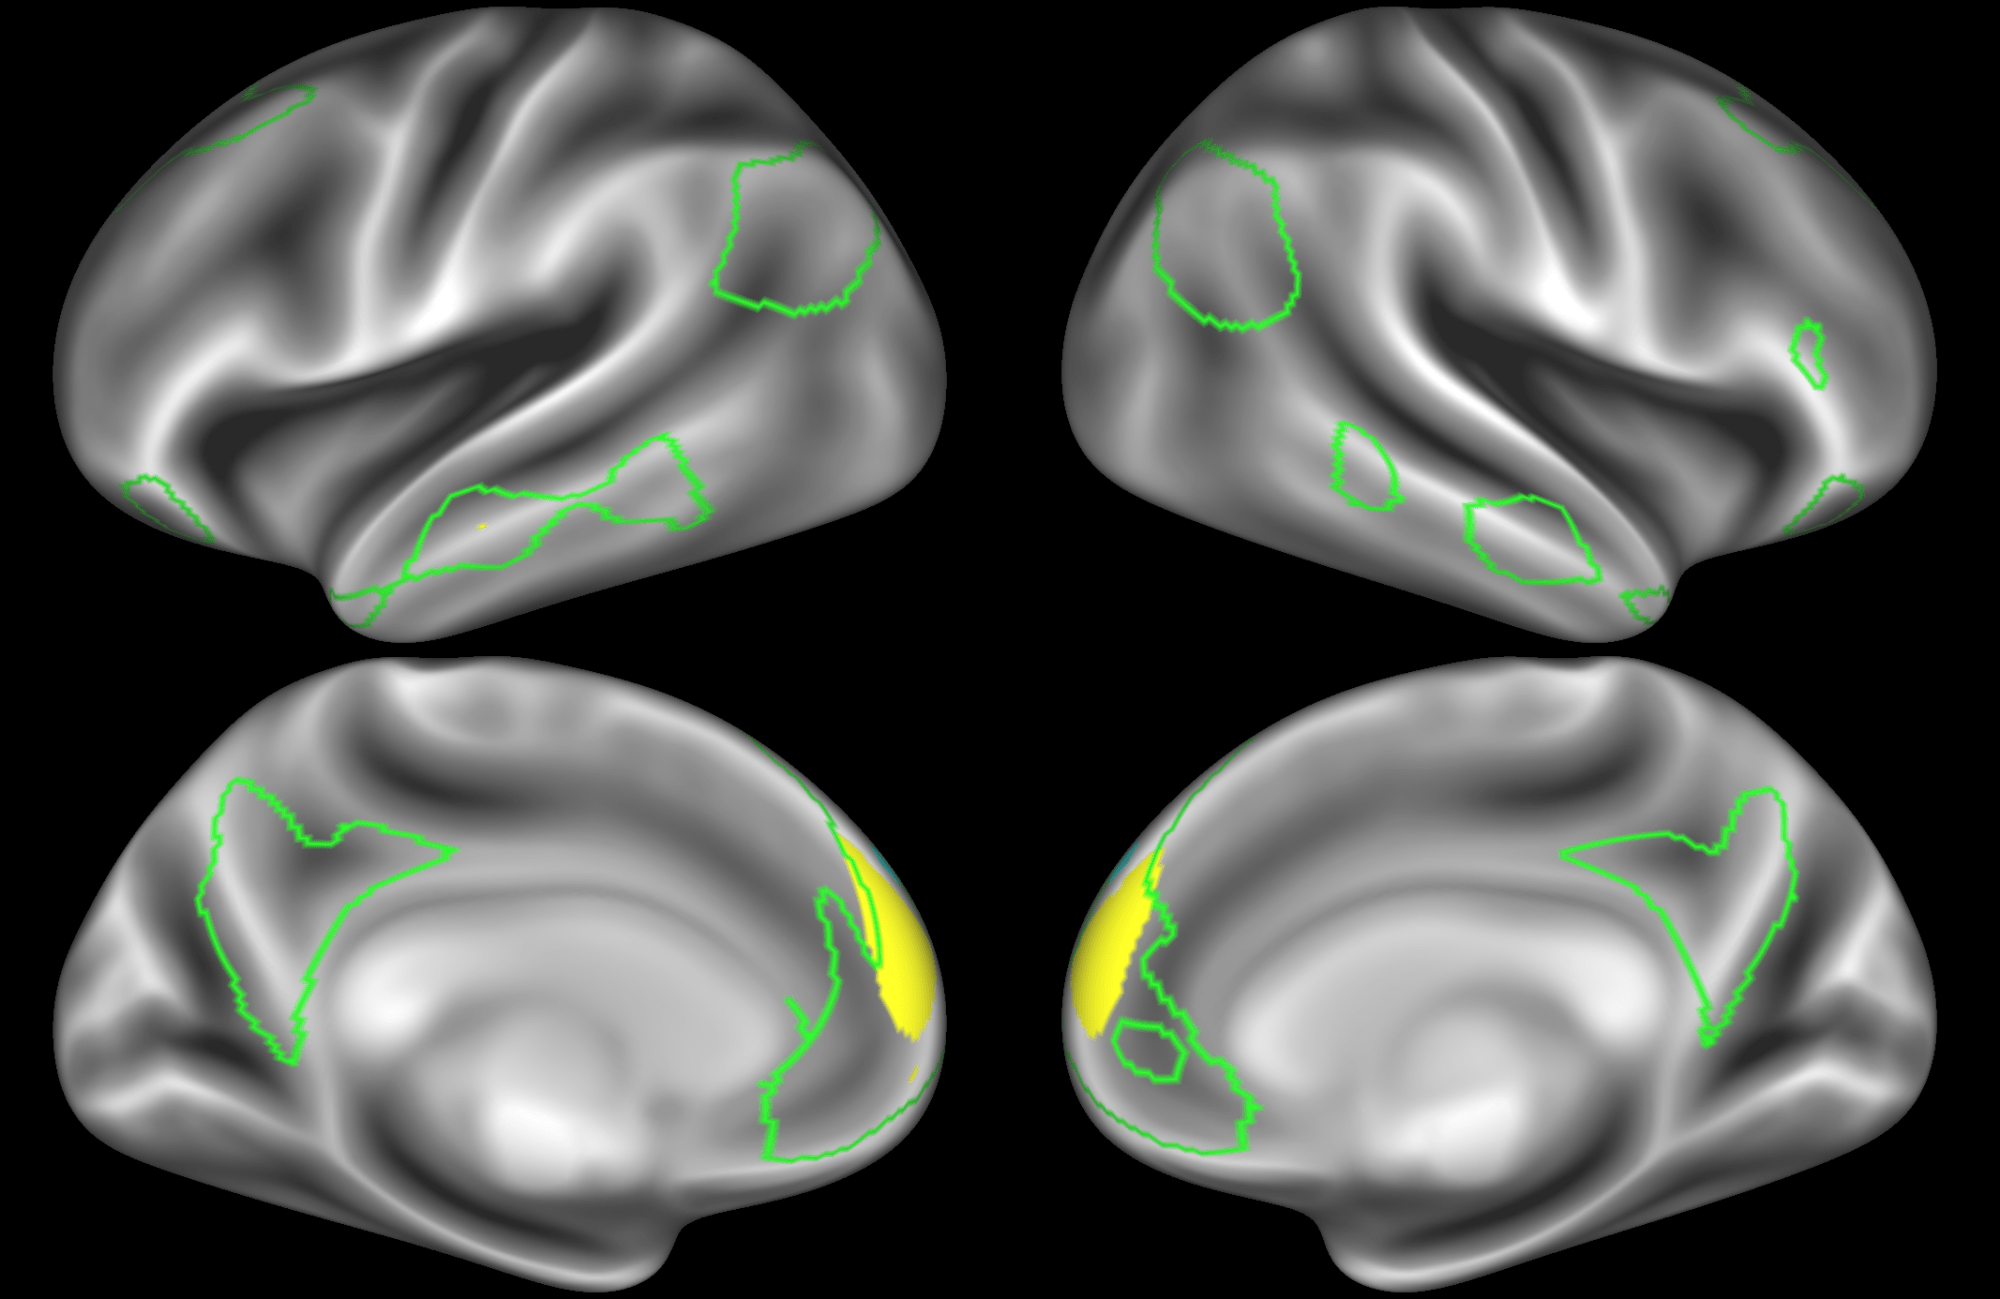 hight resolution of note that there are four different nodes that represent some part of the inferior parietal lobule shown in